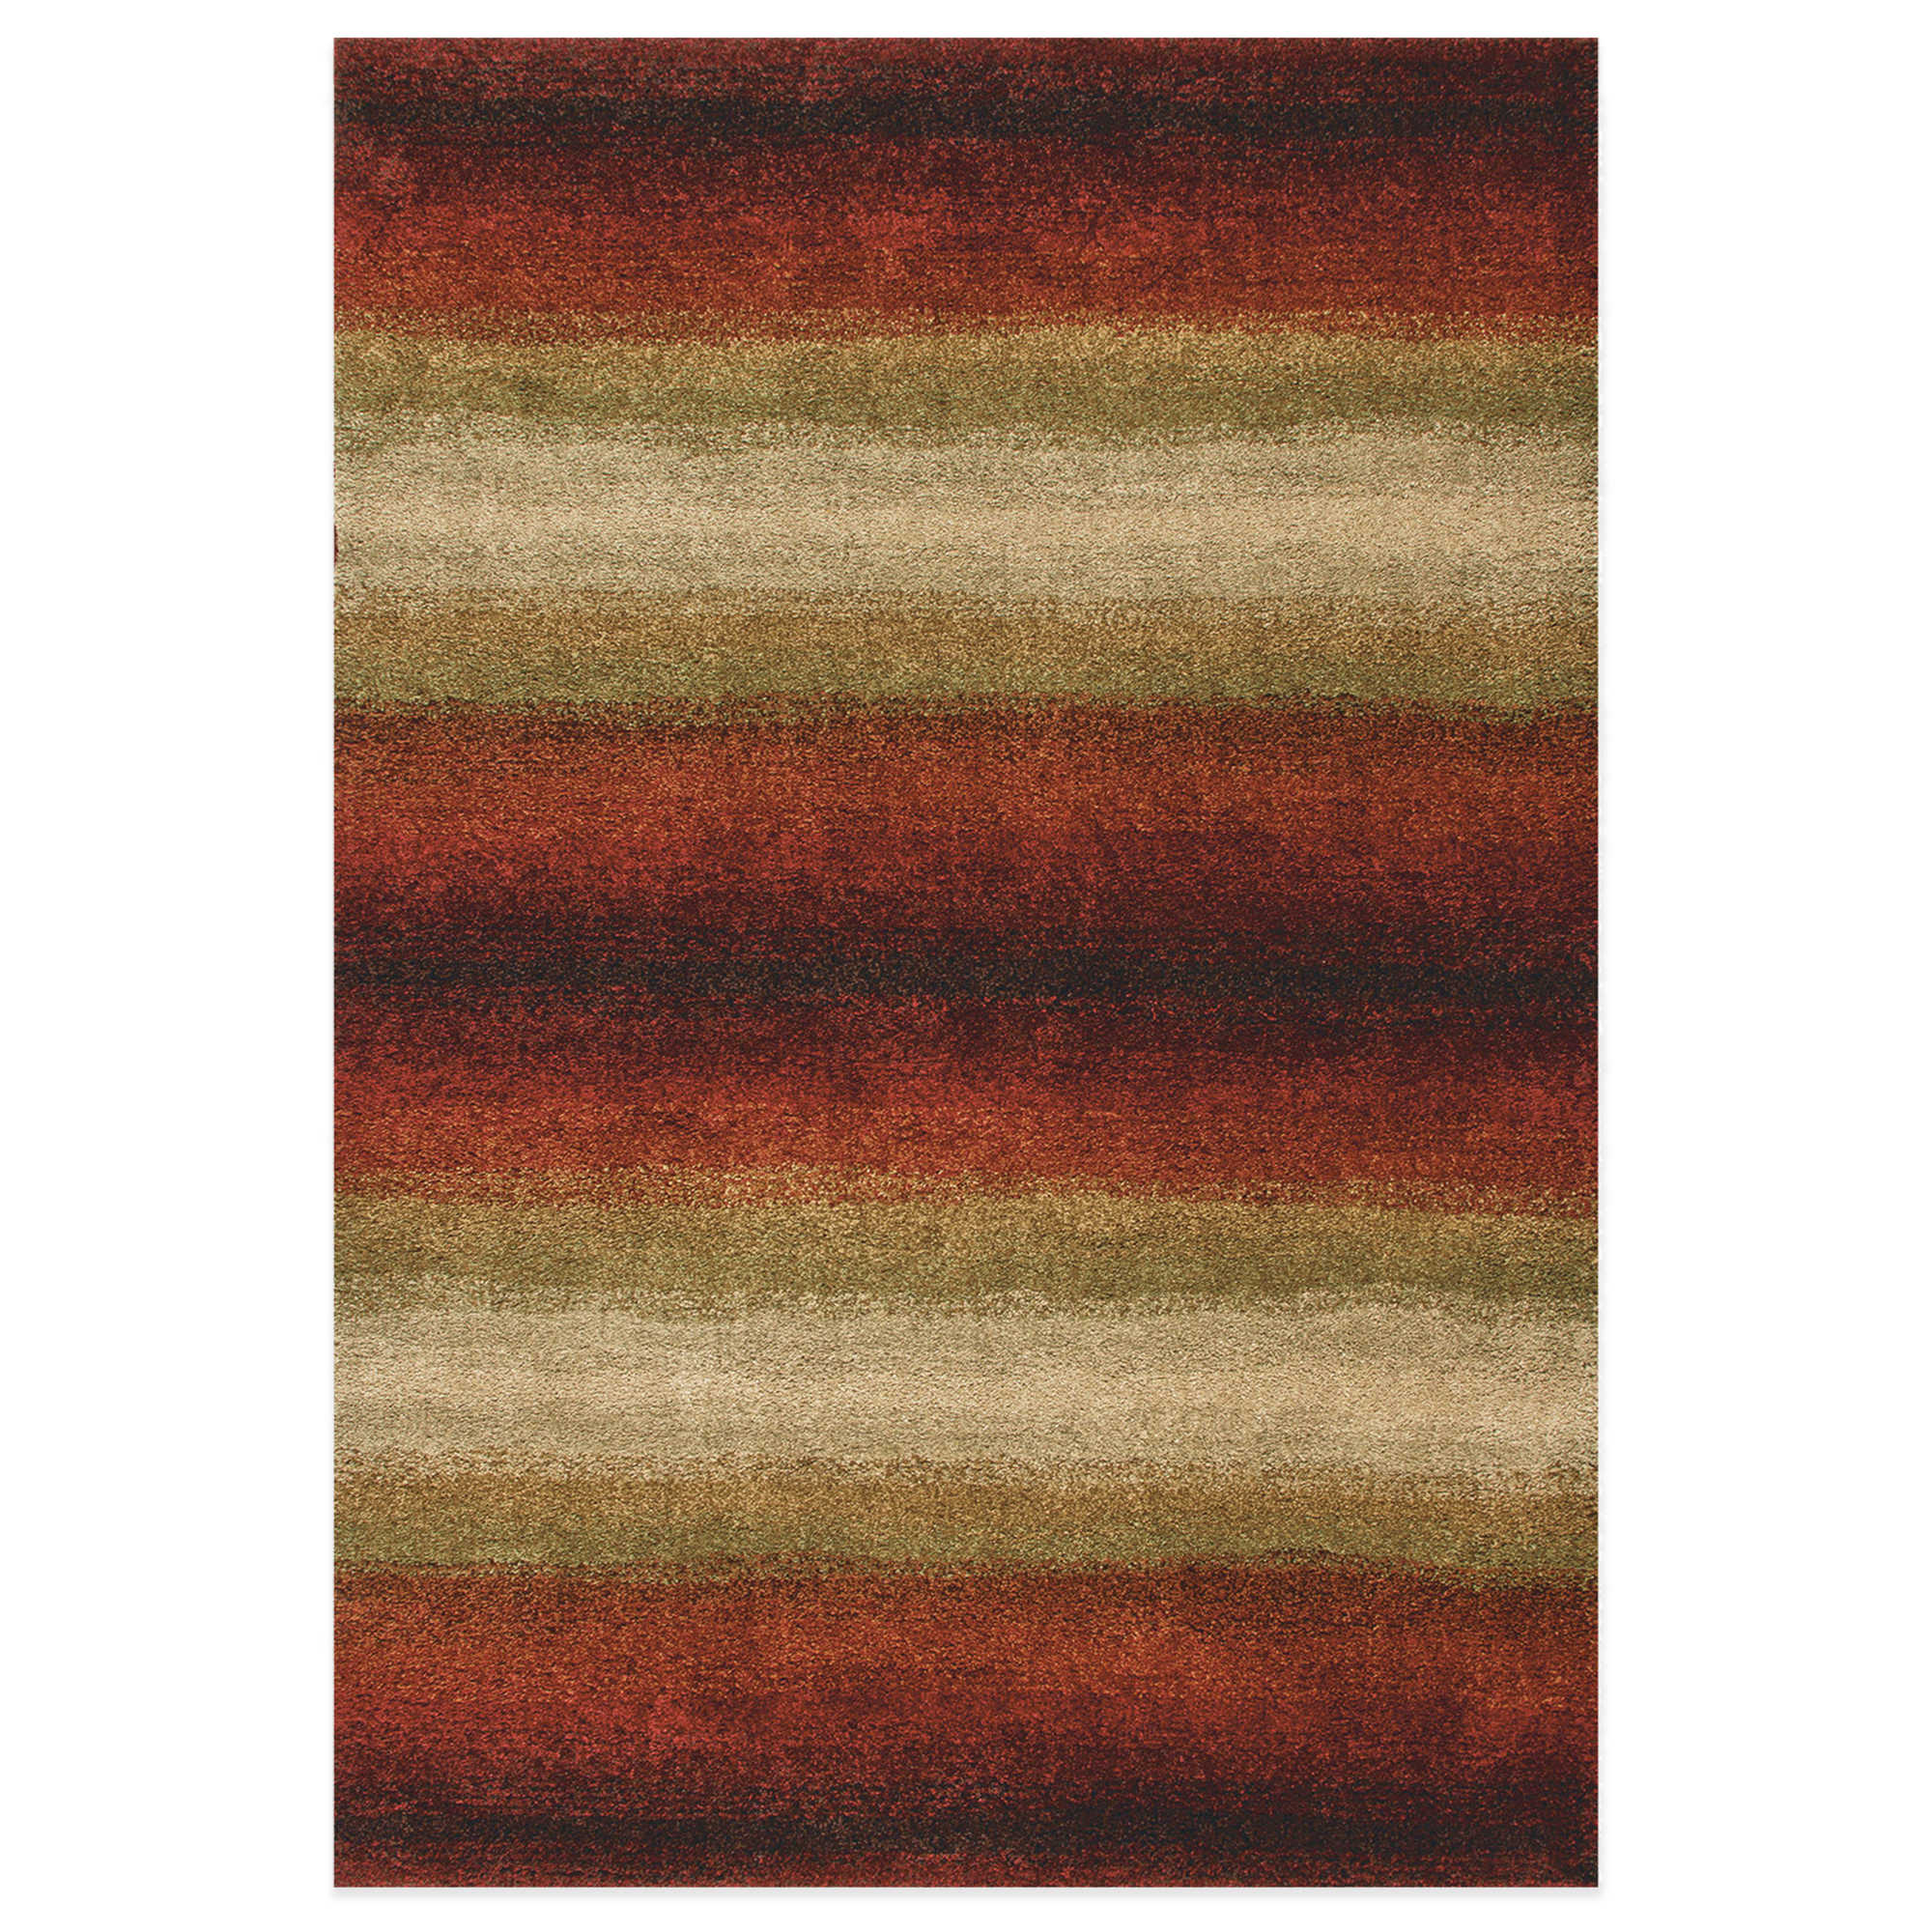 chic Orian Rugs Skyline 7 Foot for floor decor ideas